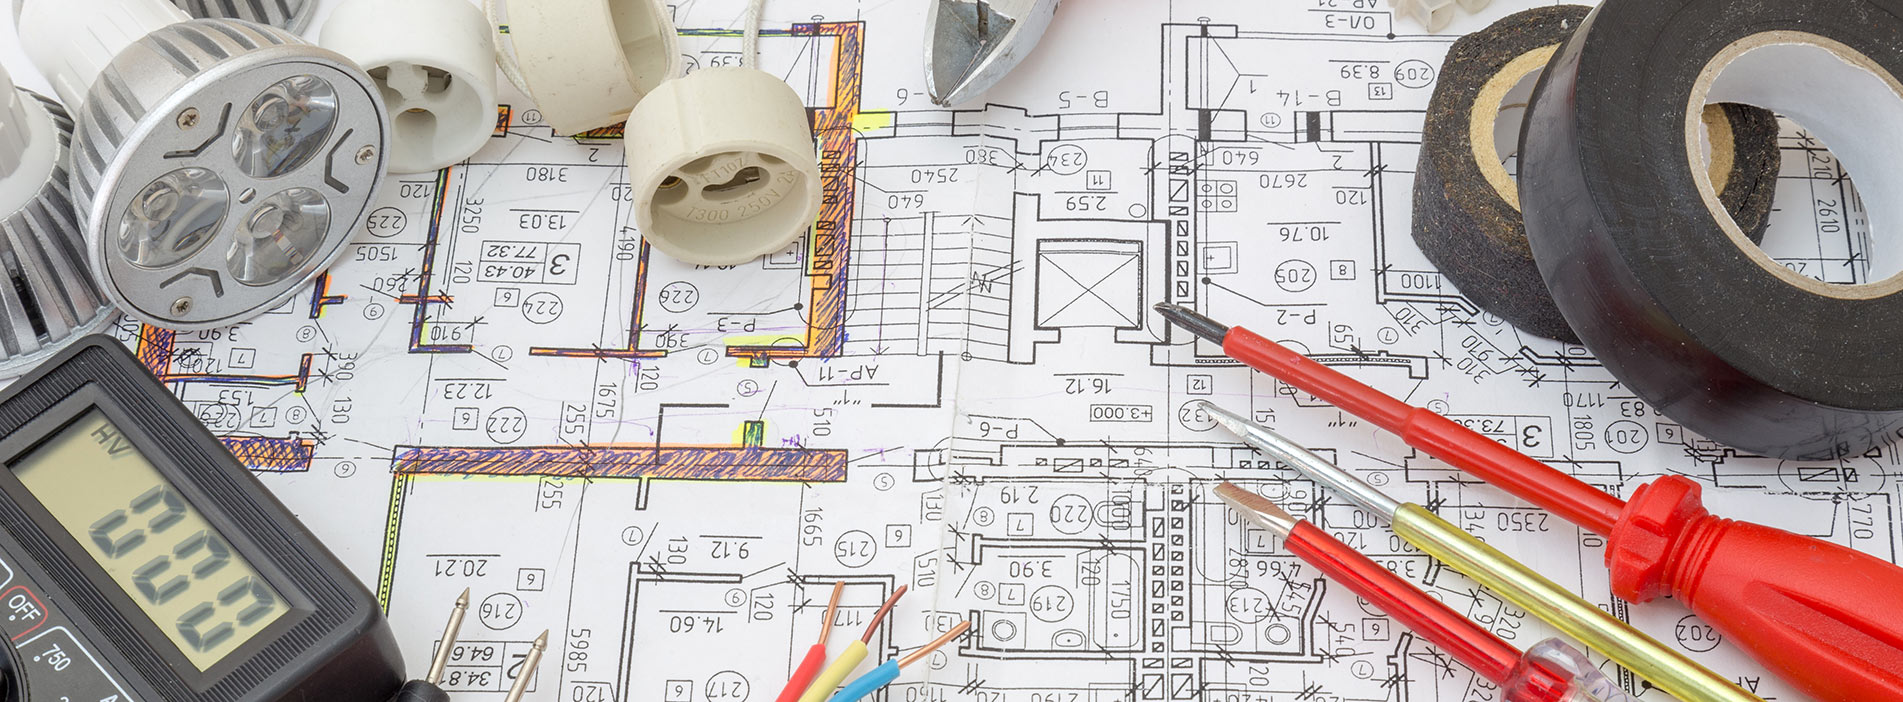 hight resolution of providing quality commercial residential electrical services since 1982